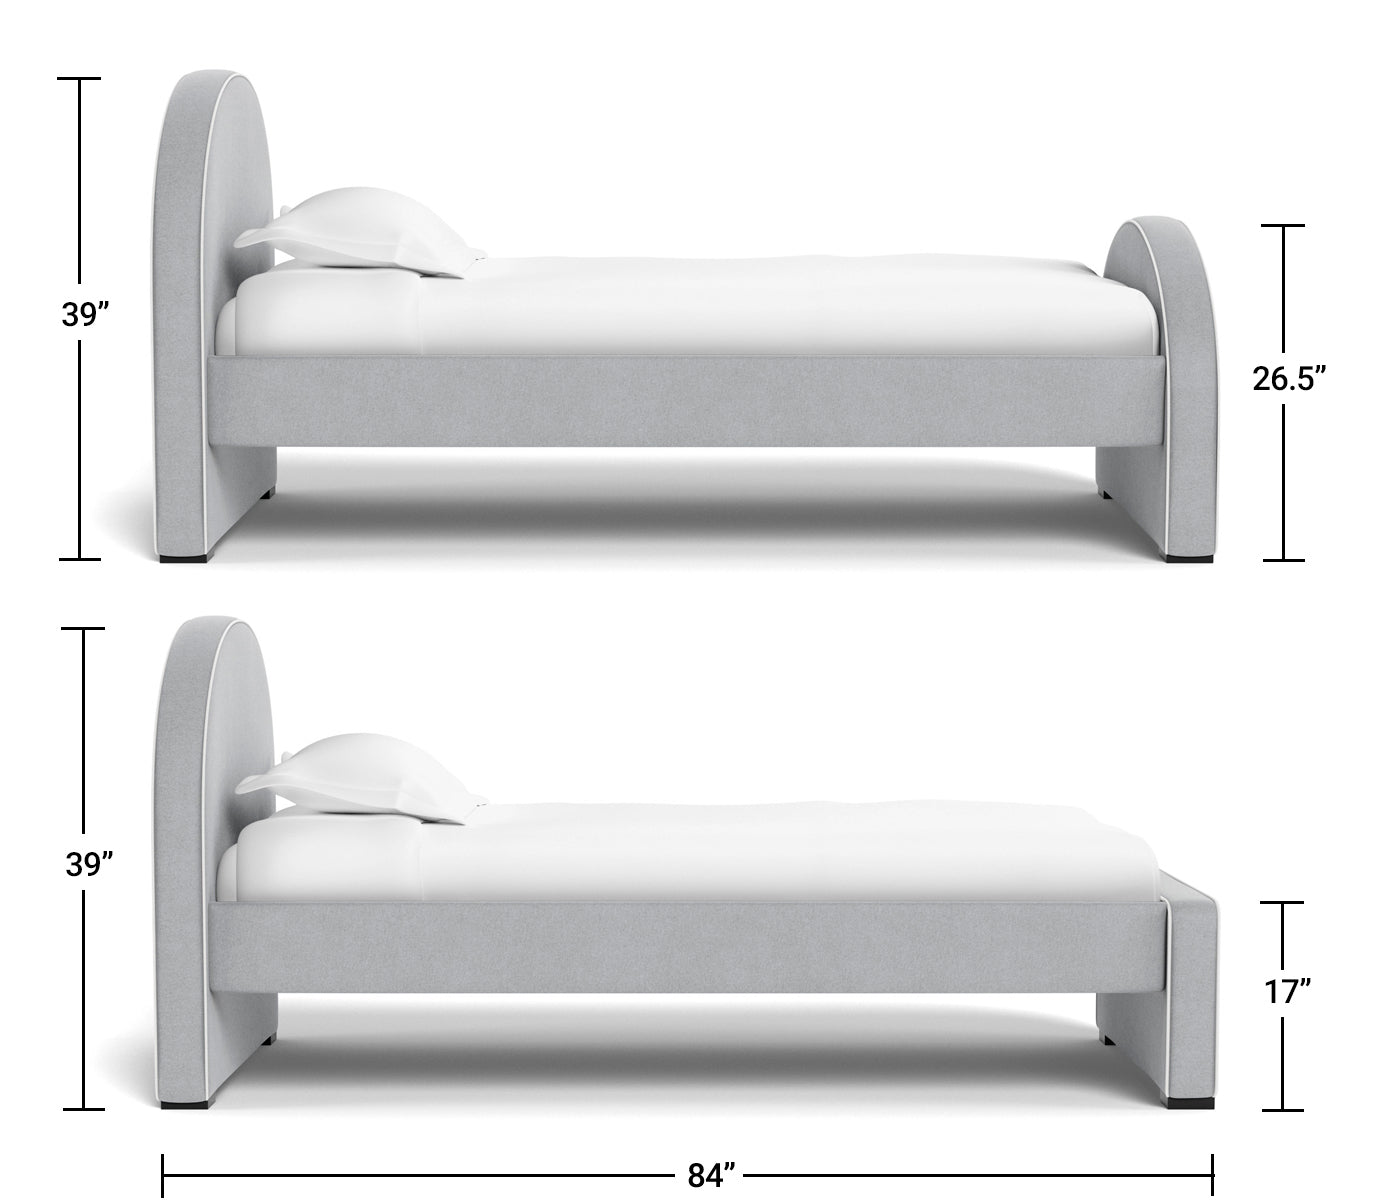 Luna Twin Bed Dimensions side view